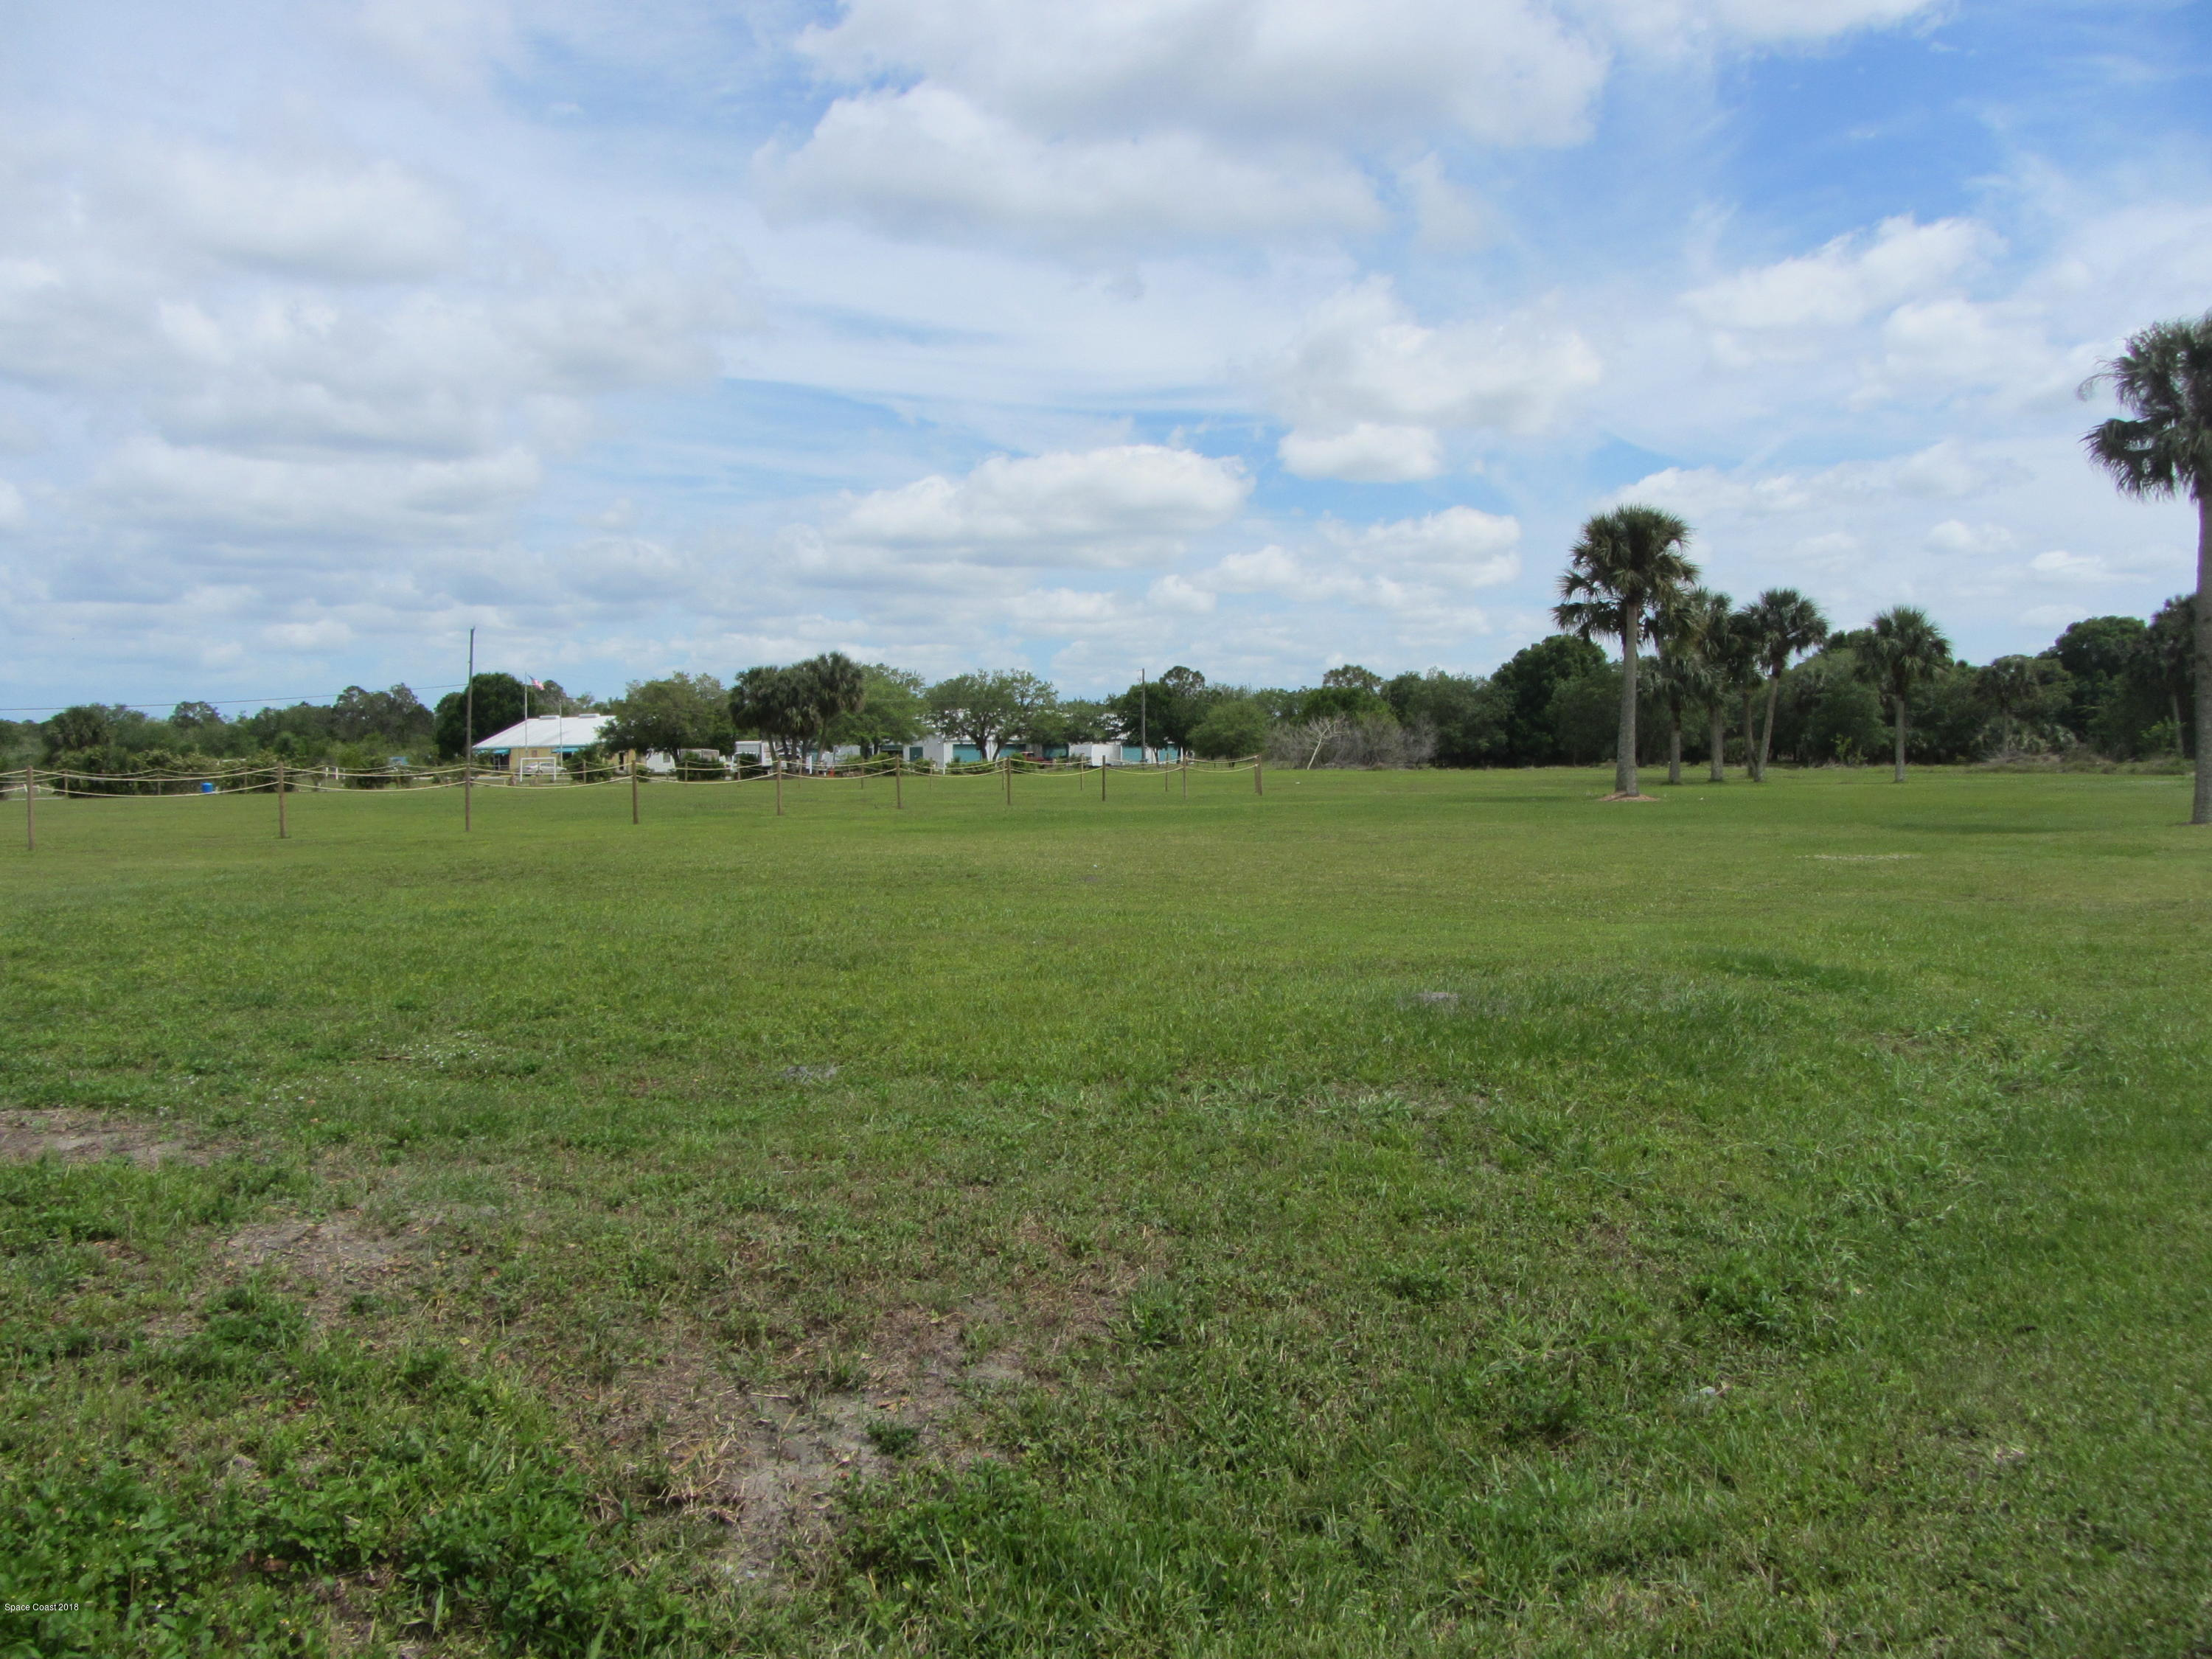 Land for Sale at 12425 County Rd. 512 12425 County Rd. 512 Fellsmere, Florida 32948 United States